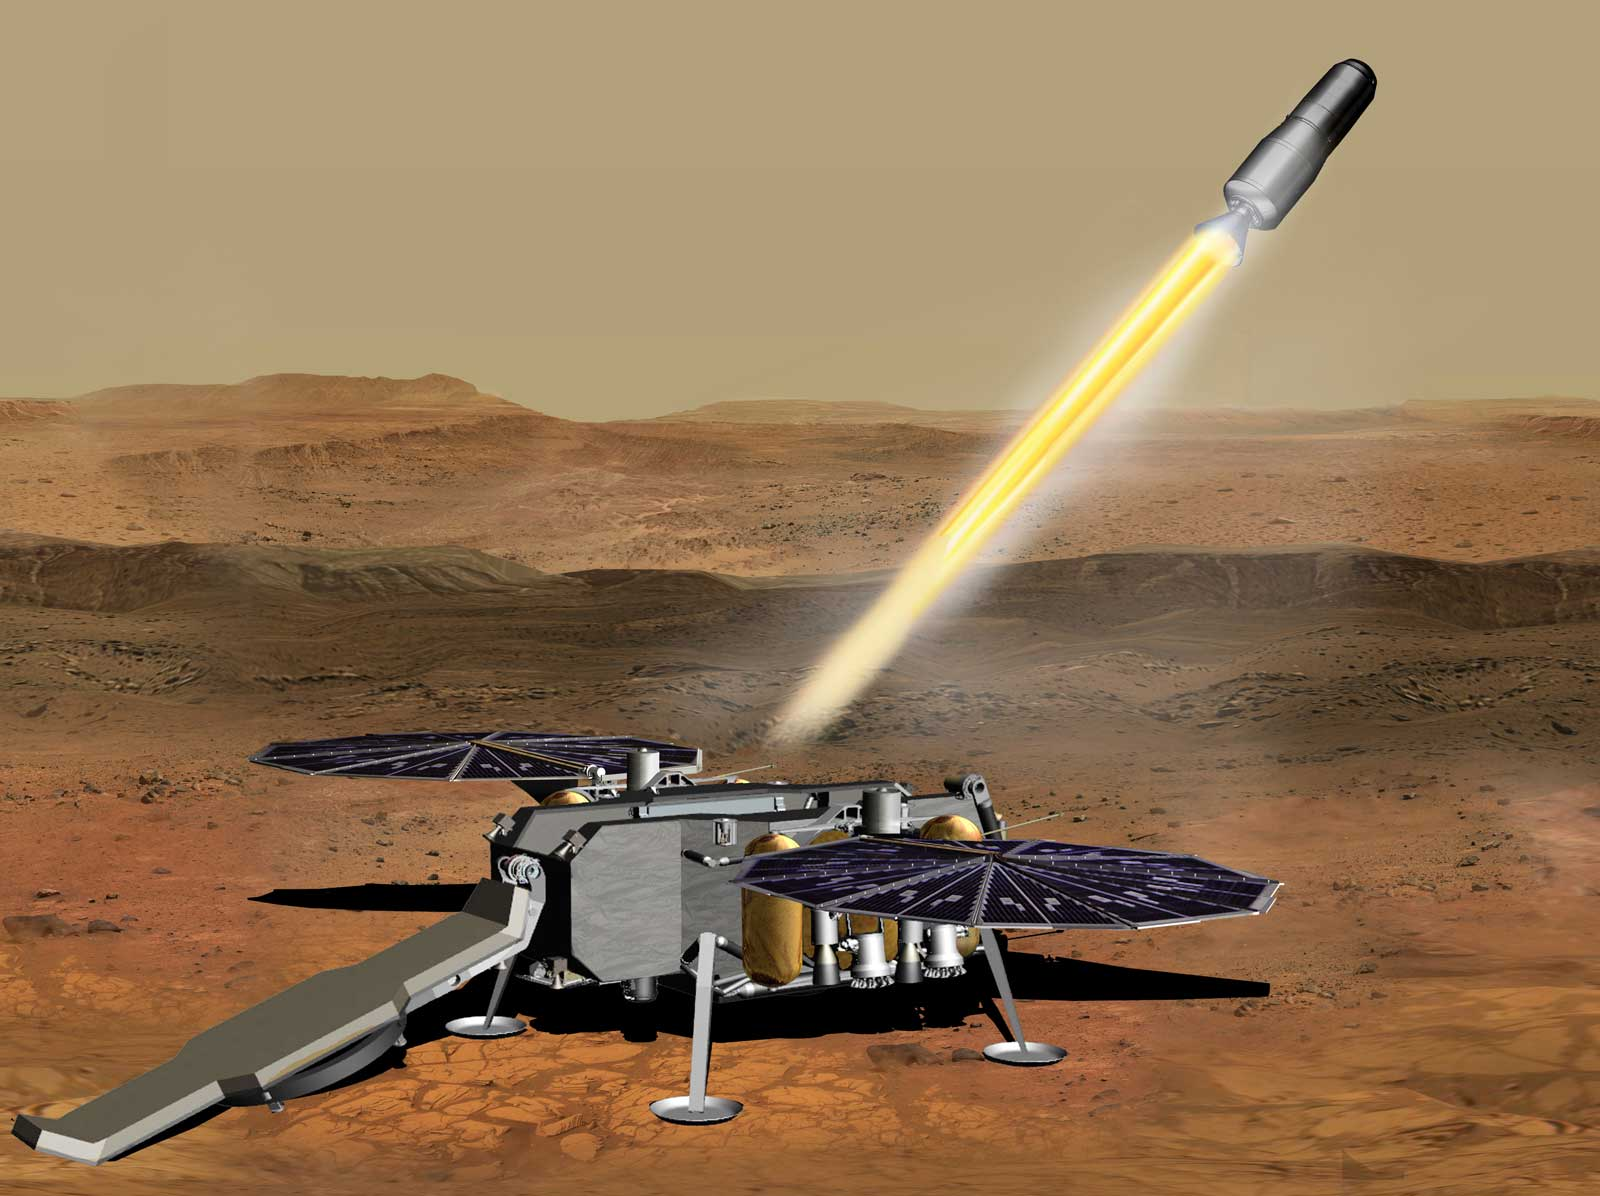 This illustration shows a concept of how the NASA Mars Ascent Vehicle, carrying tubes containing rock and soil samples, could be launched from the surface of Mars in one step of the Mars sample return mission.